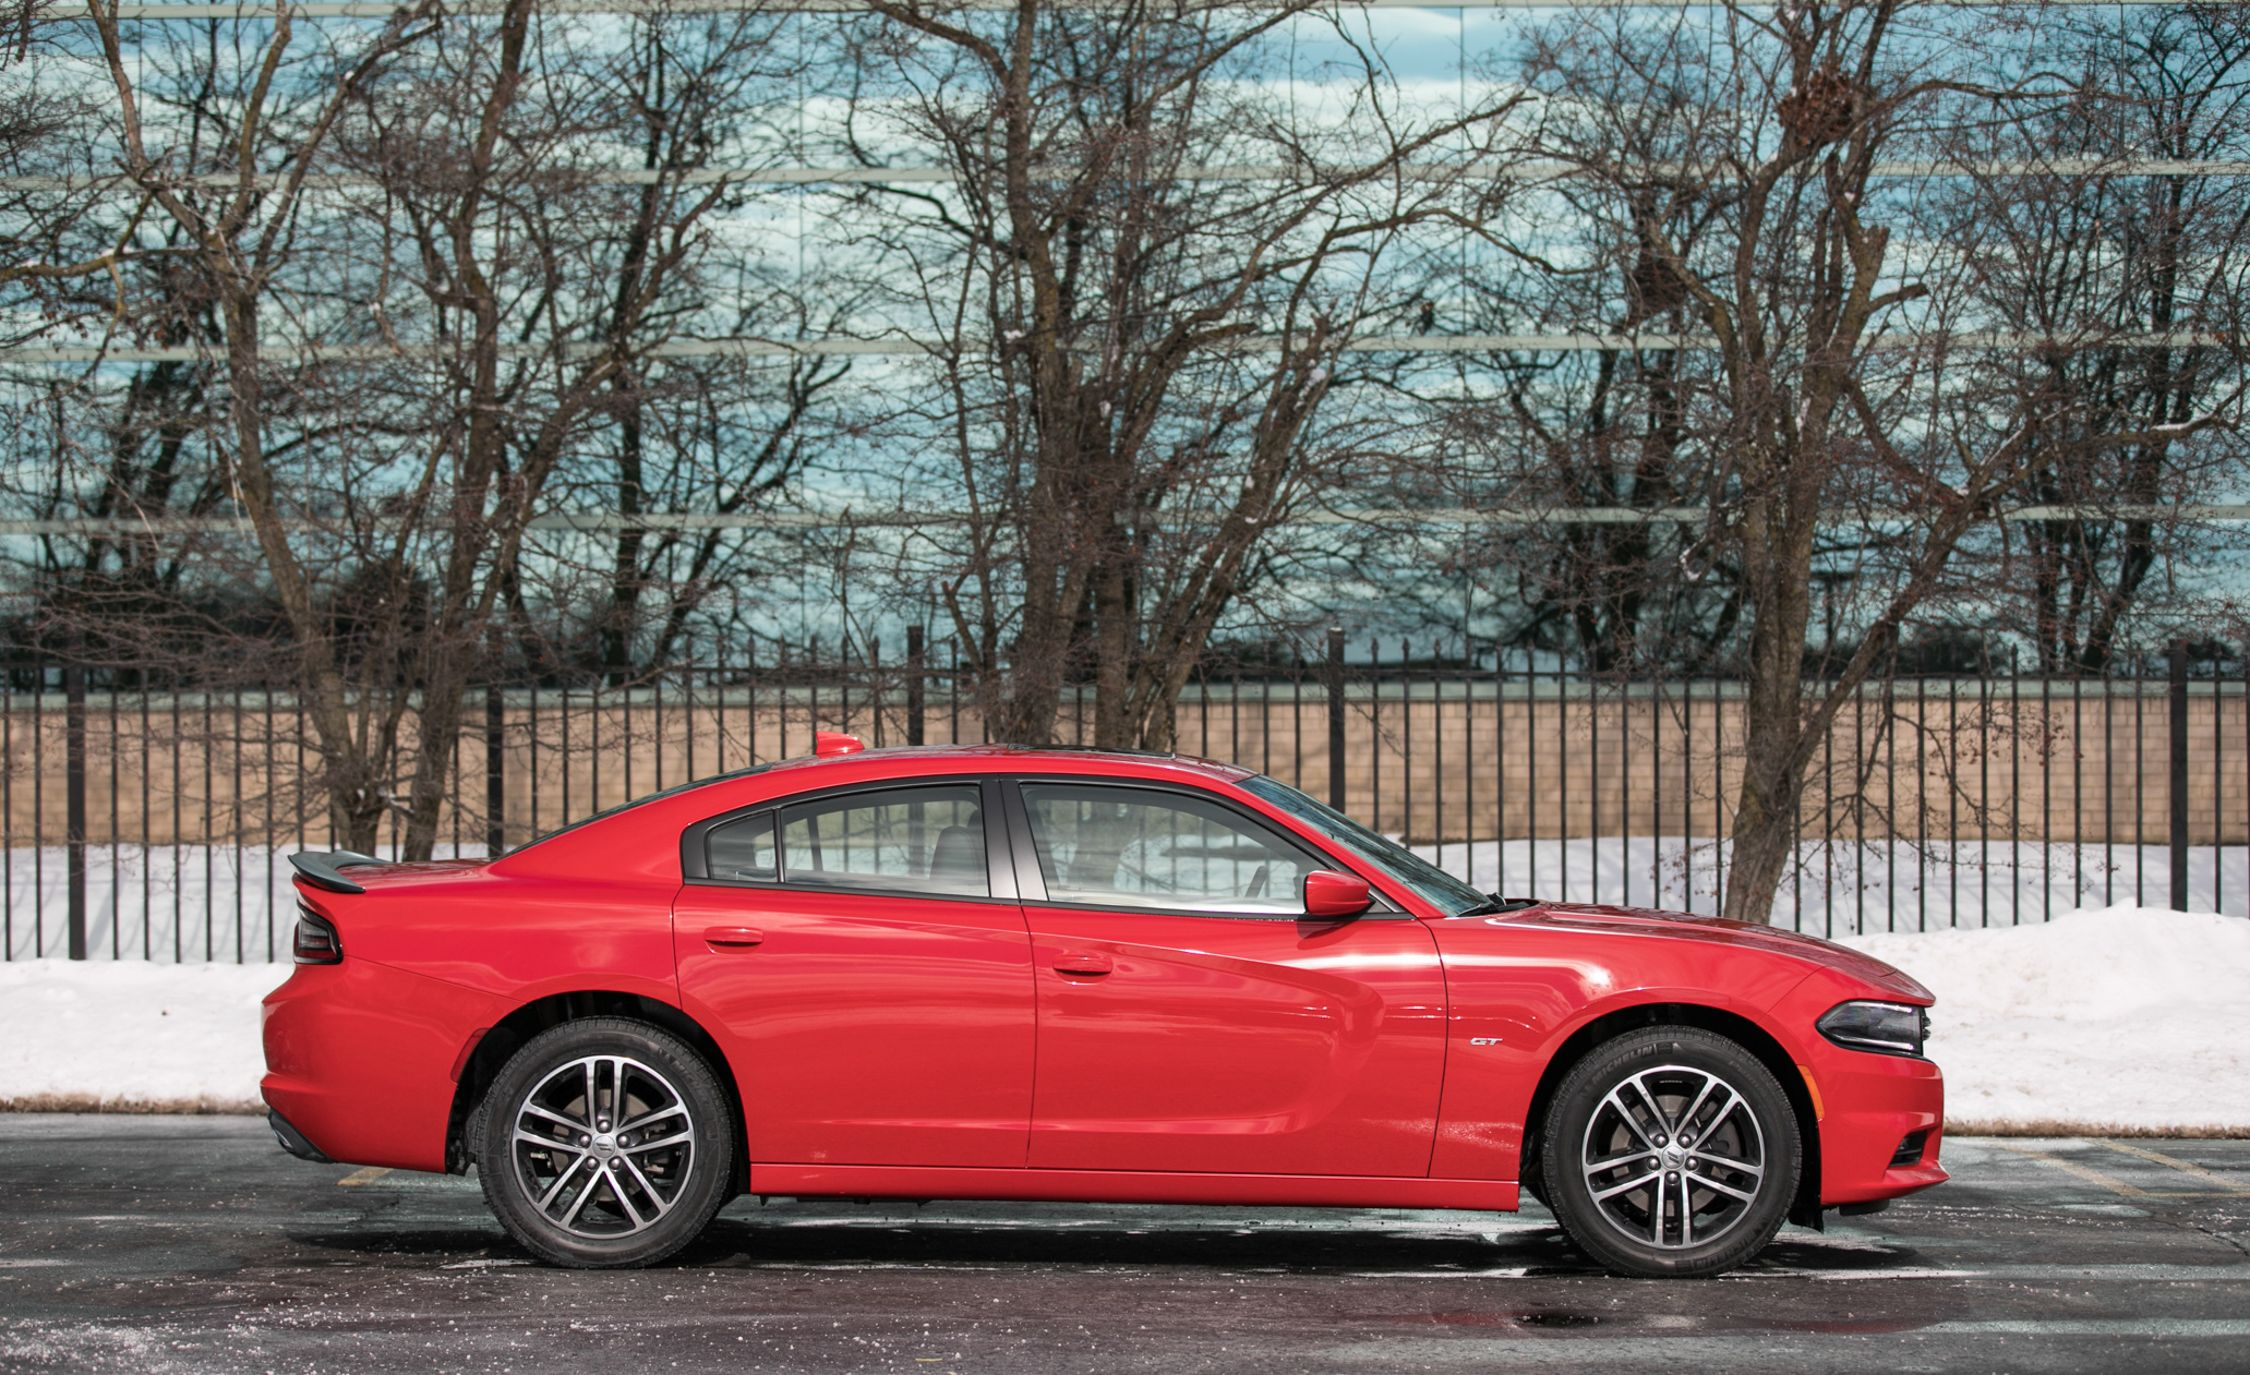 2019 Dodge Charger Reviews Dodge Charger Price Photos And Specs